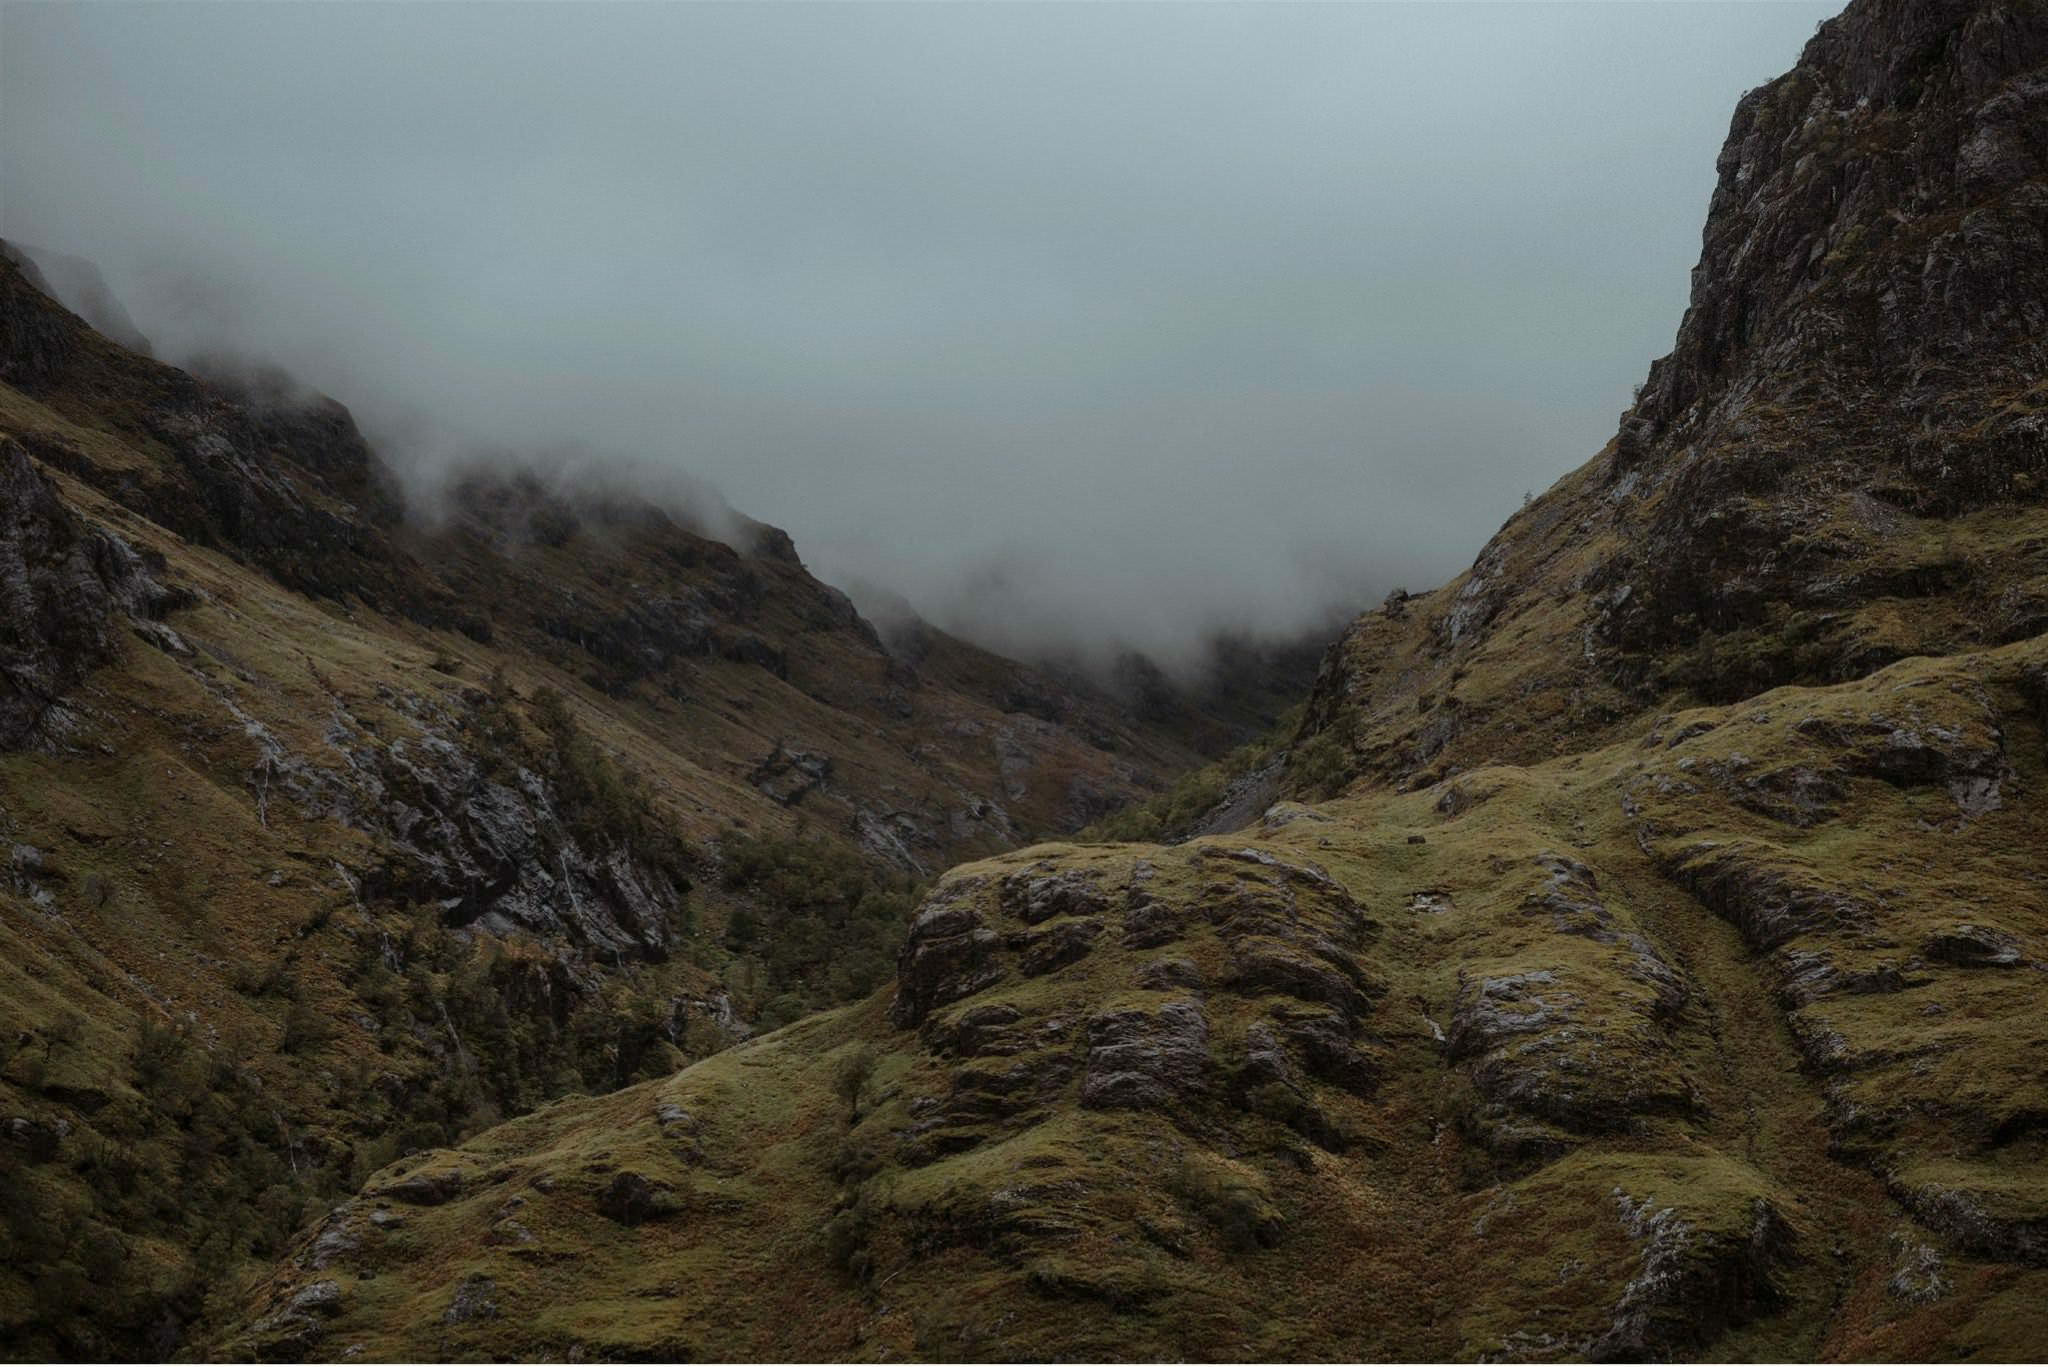 Misty mountains in the Scottish Highlands